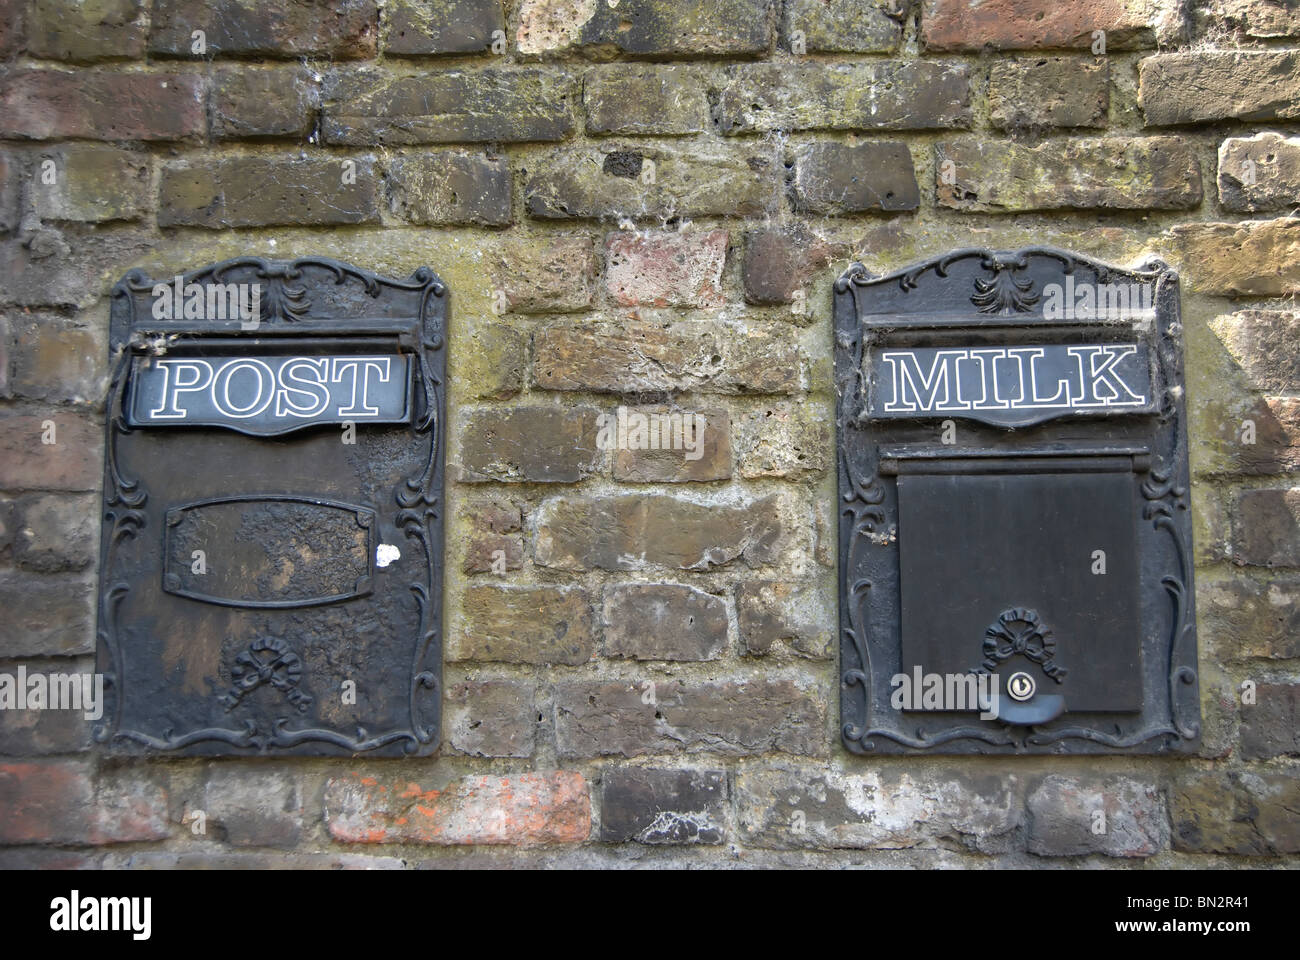 wall boxes for post and milk, outside montrose house in petersham, surrey, england - Stock Image